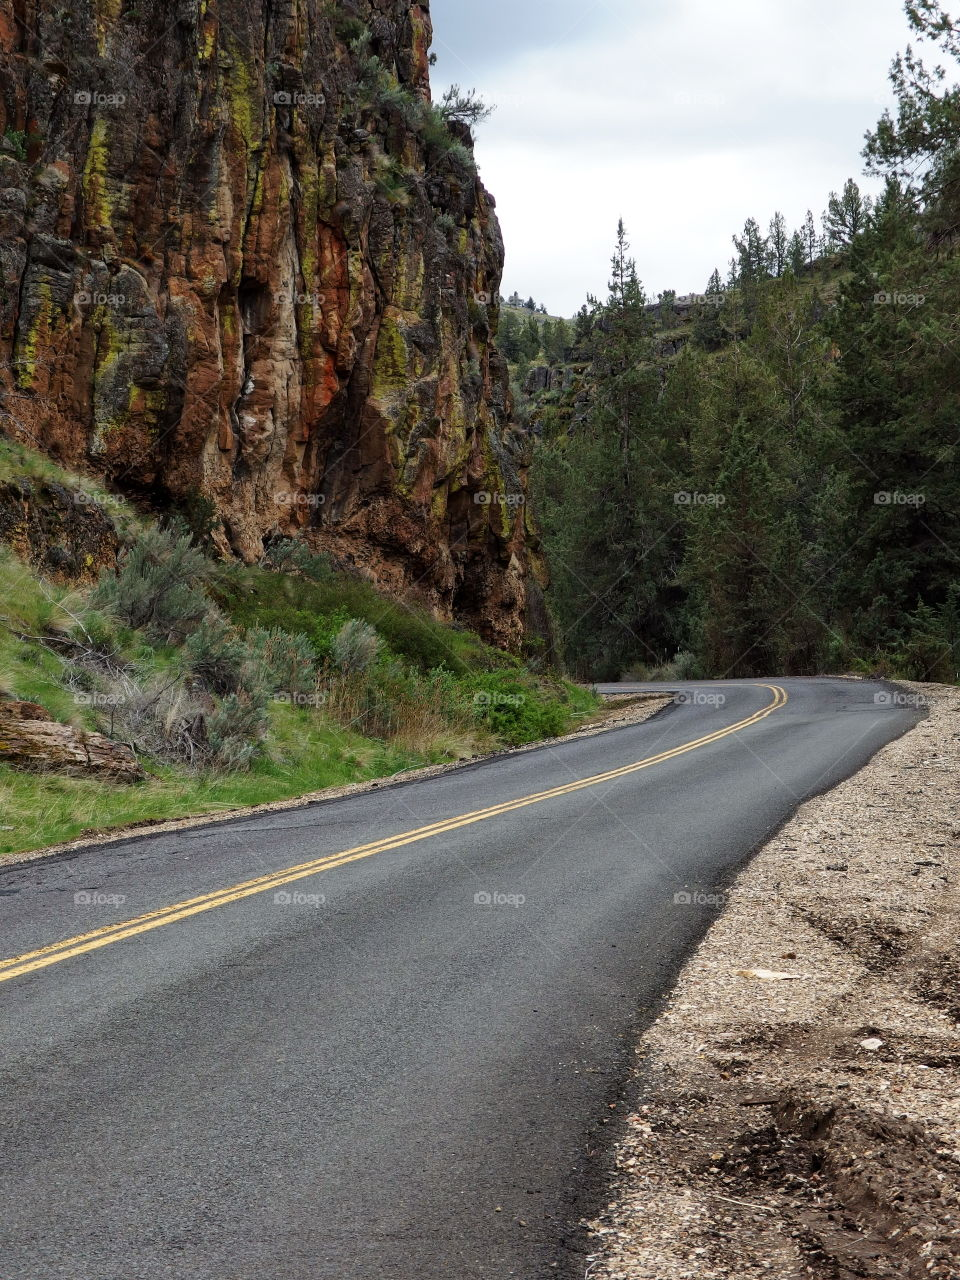 A road in Eastern Oregon winds through canyons, hills, and cliffs covered in trees and fresh green sagebrush on a sunny spring morning.